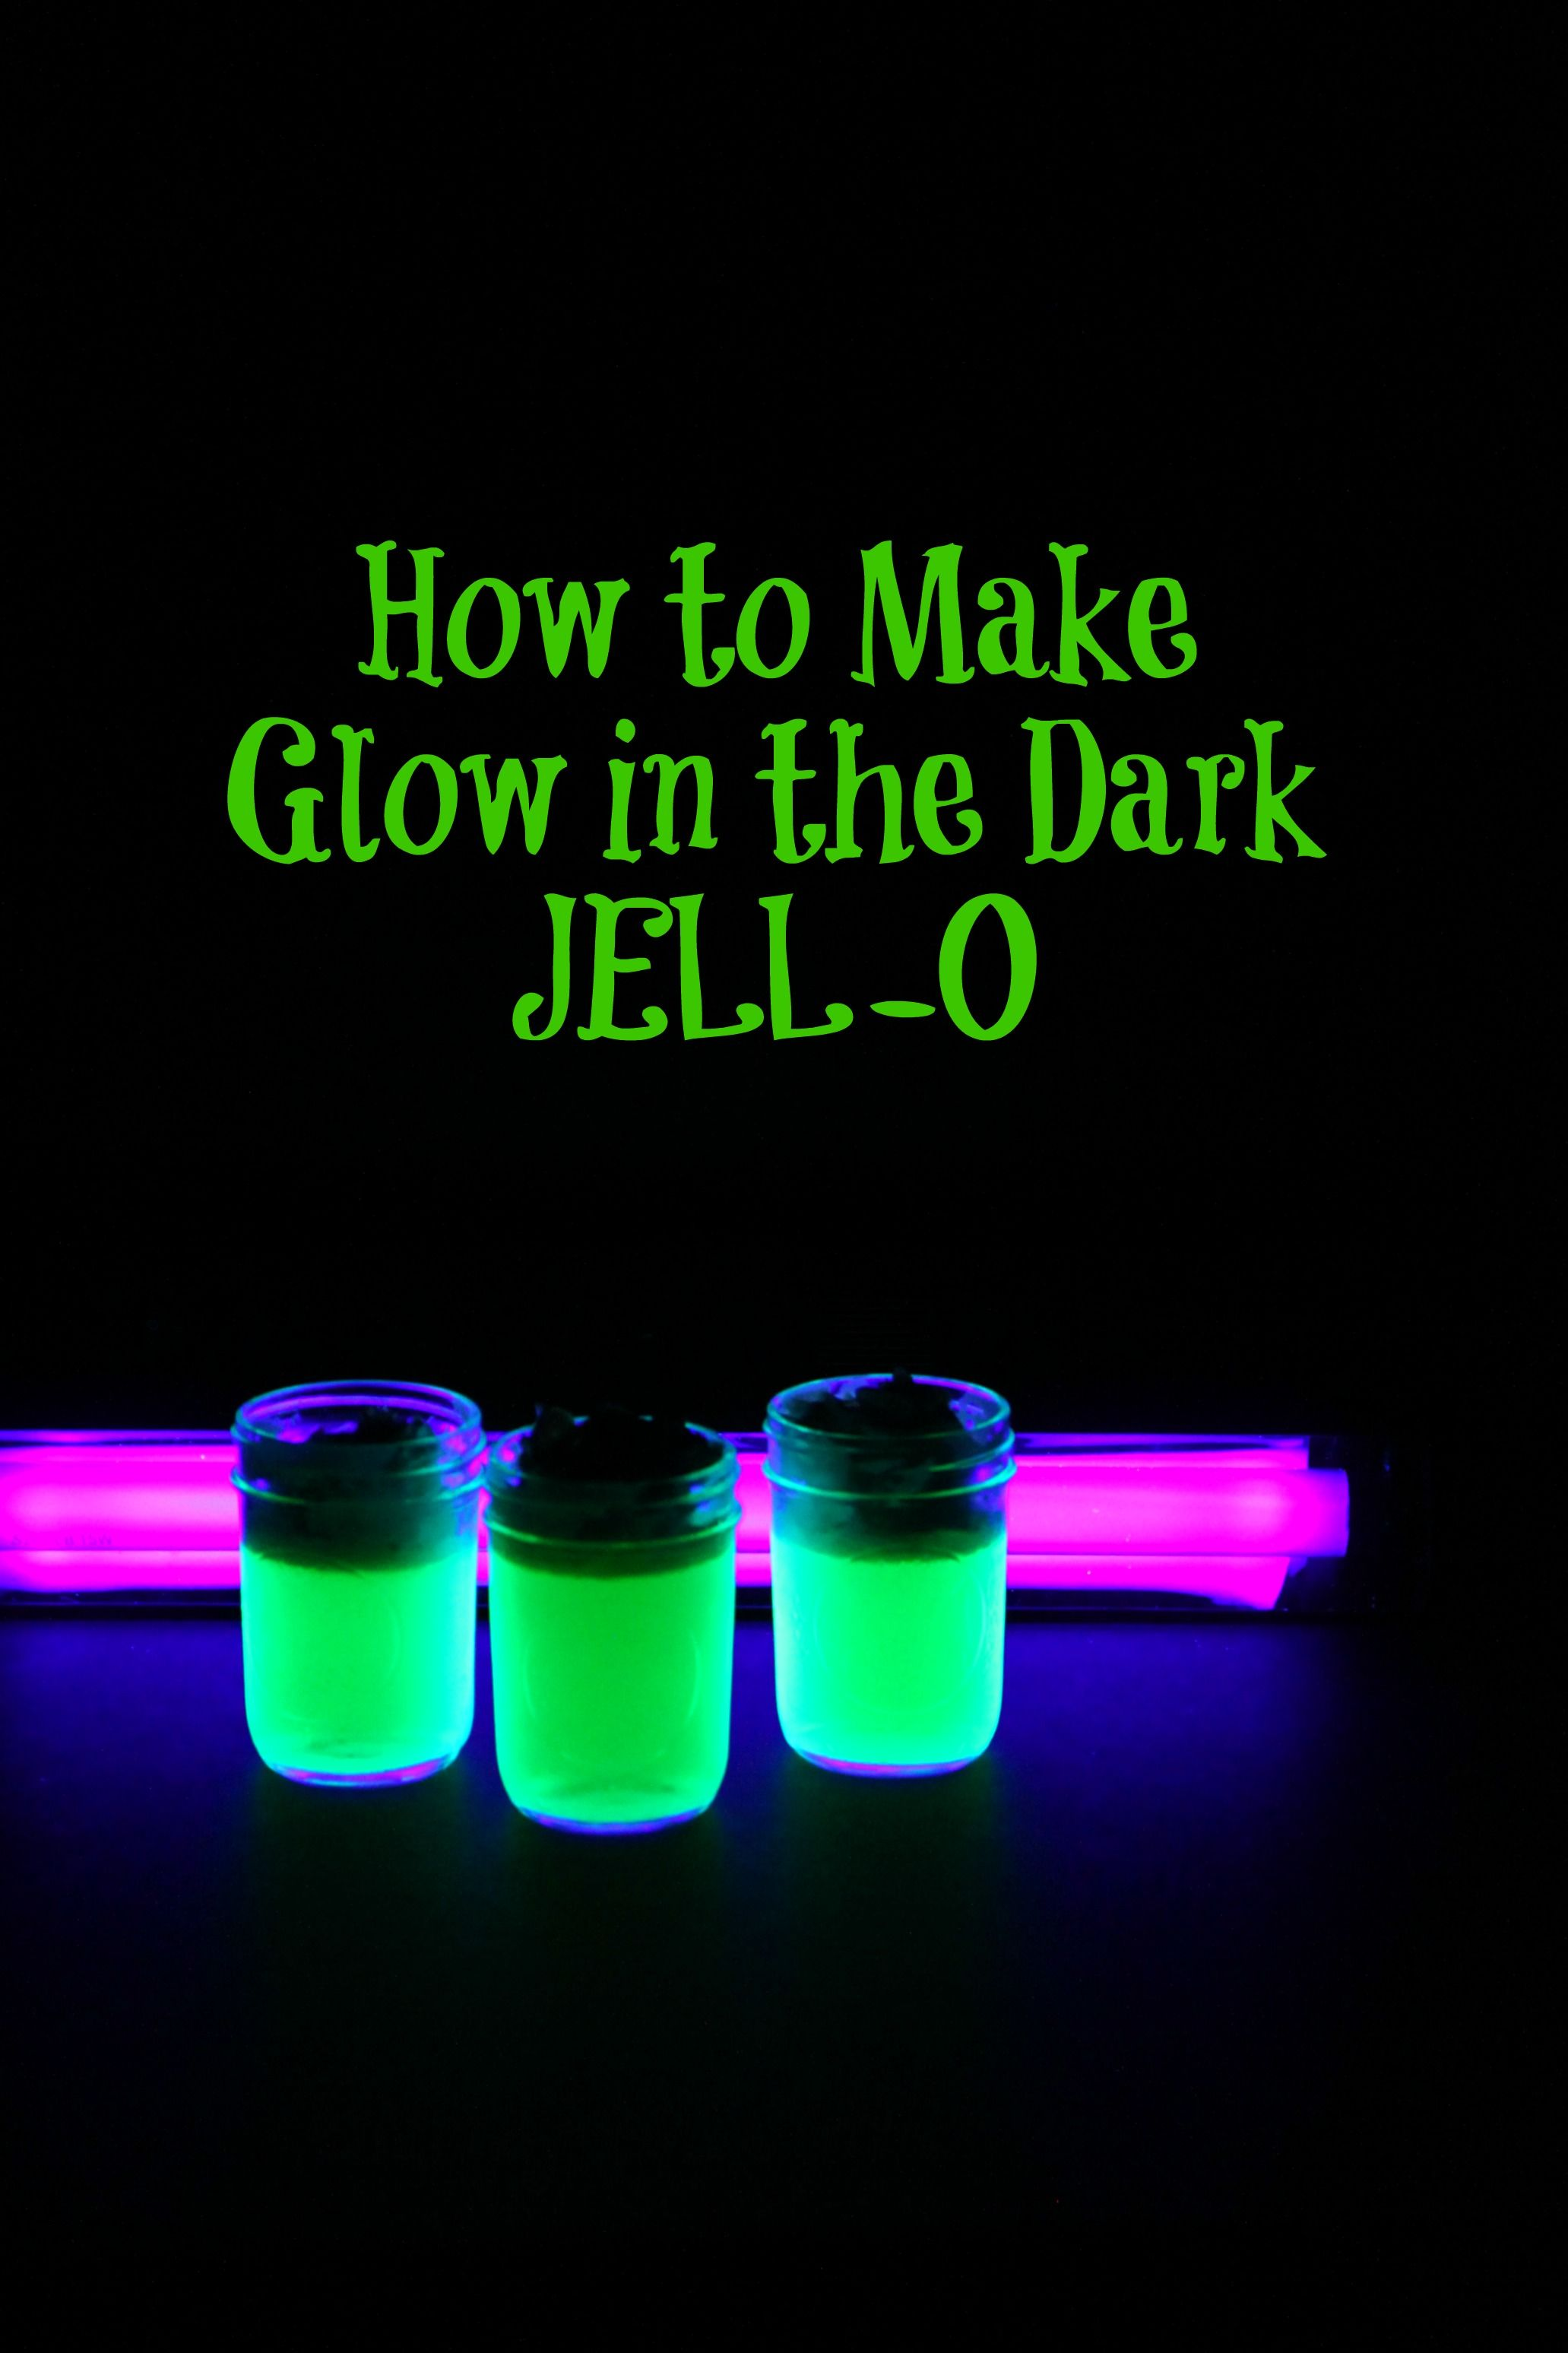 Glow in the Dark JELLO Recipe Dark Tonic water and Black light